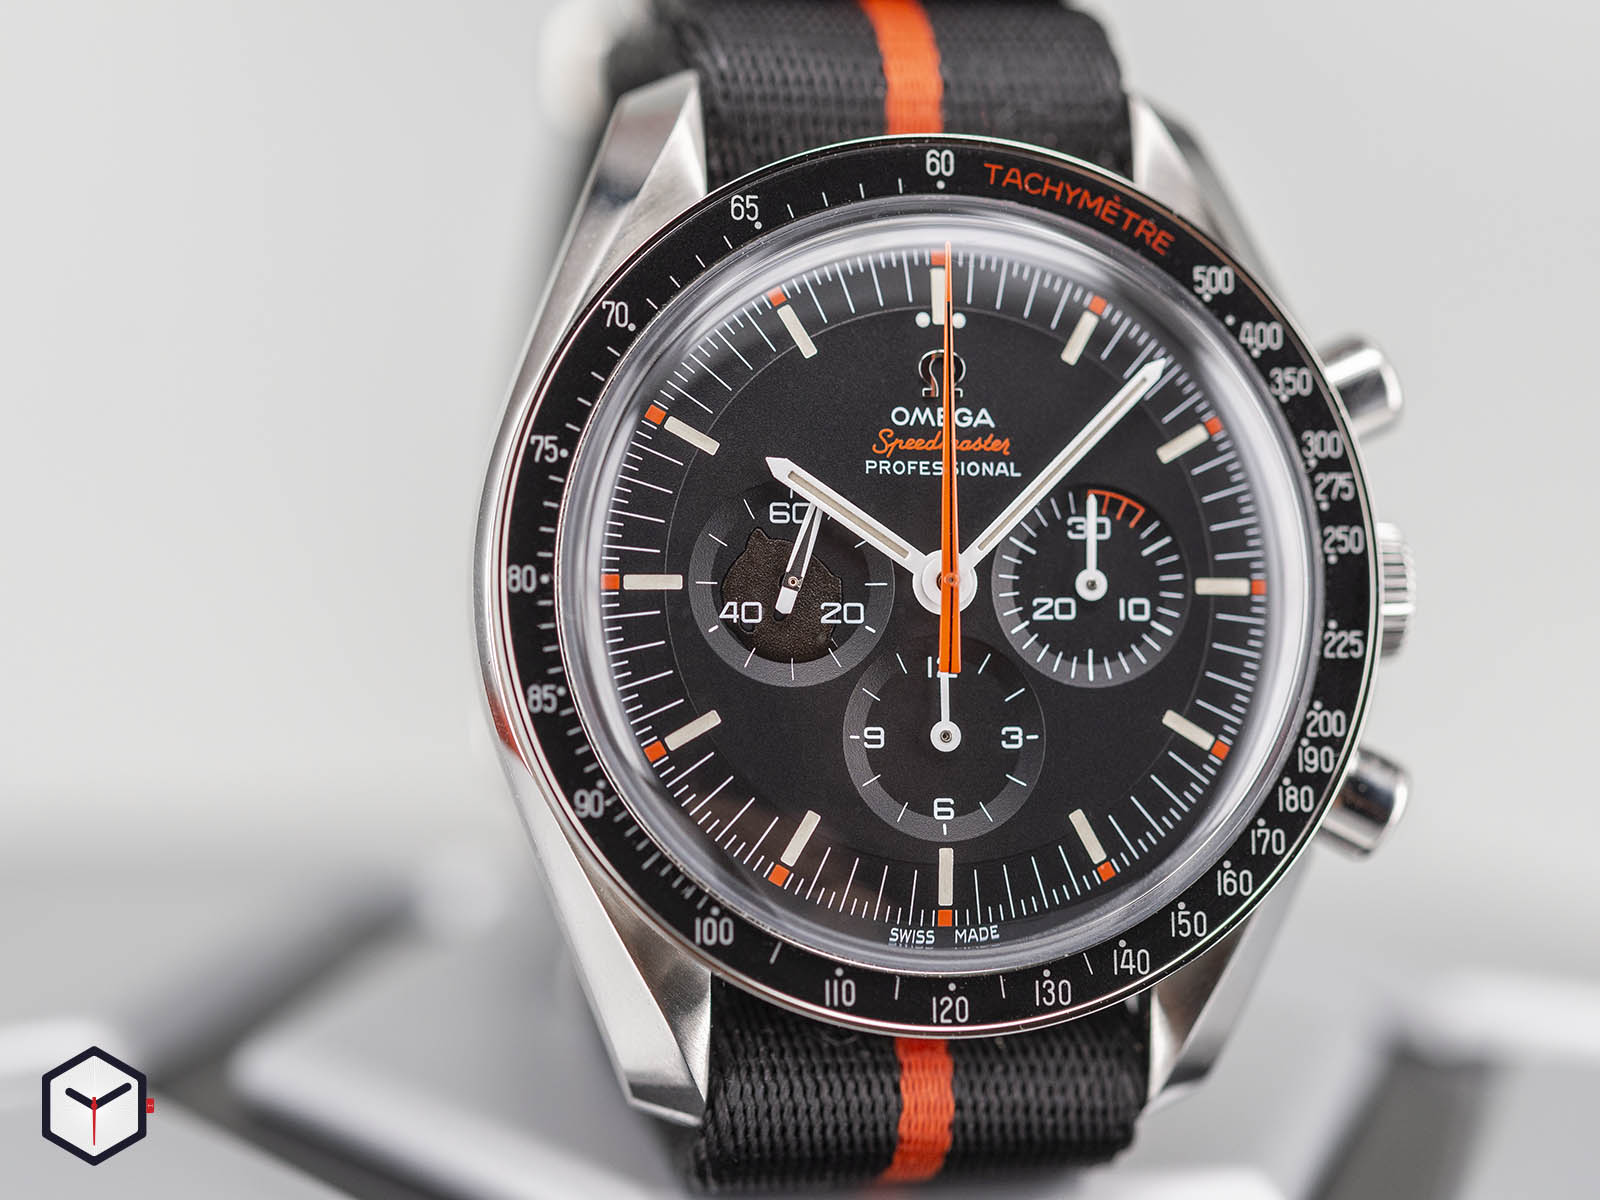 311-12-42-30-01-001-omega-speedmaster-speedy-tuesday-2018-edition-ultraman-4.jpg